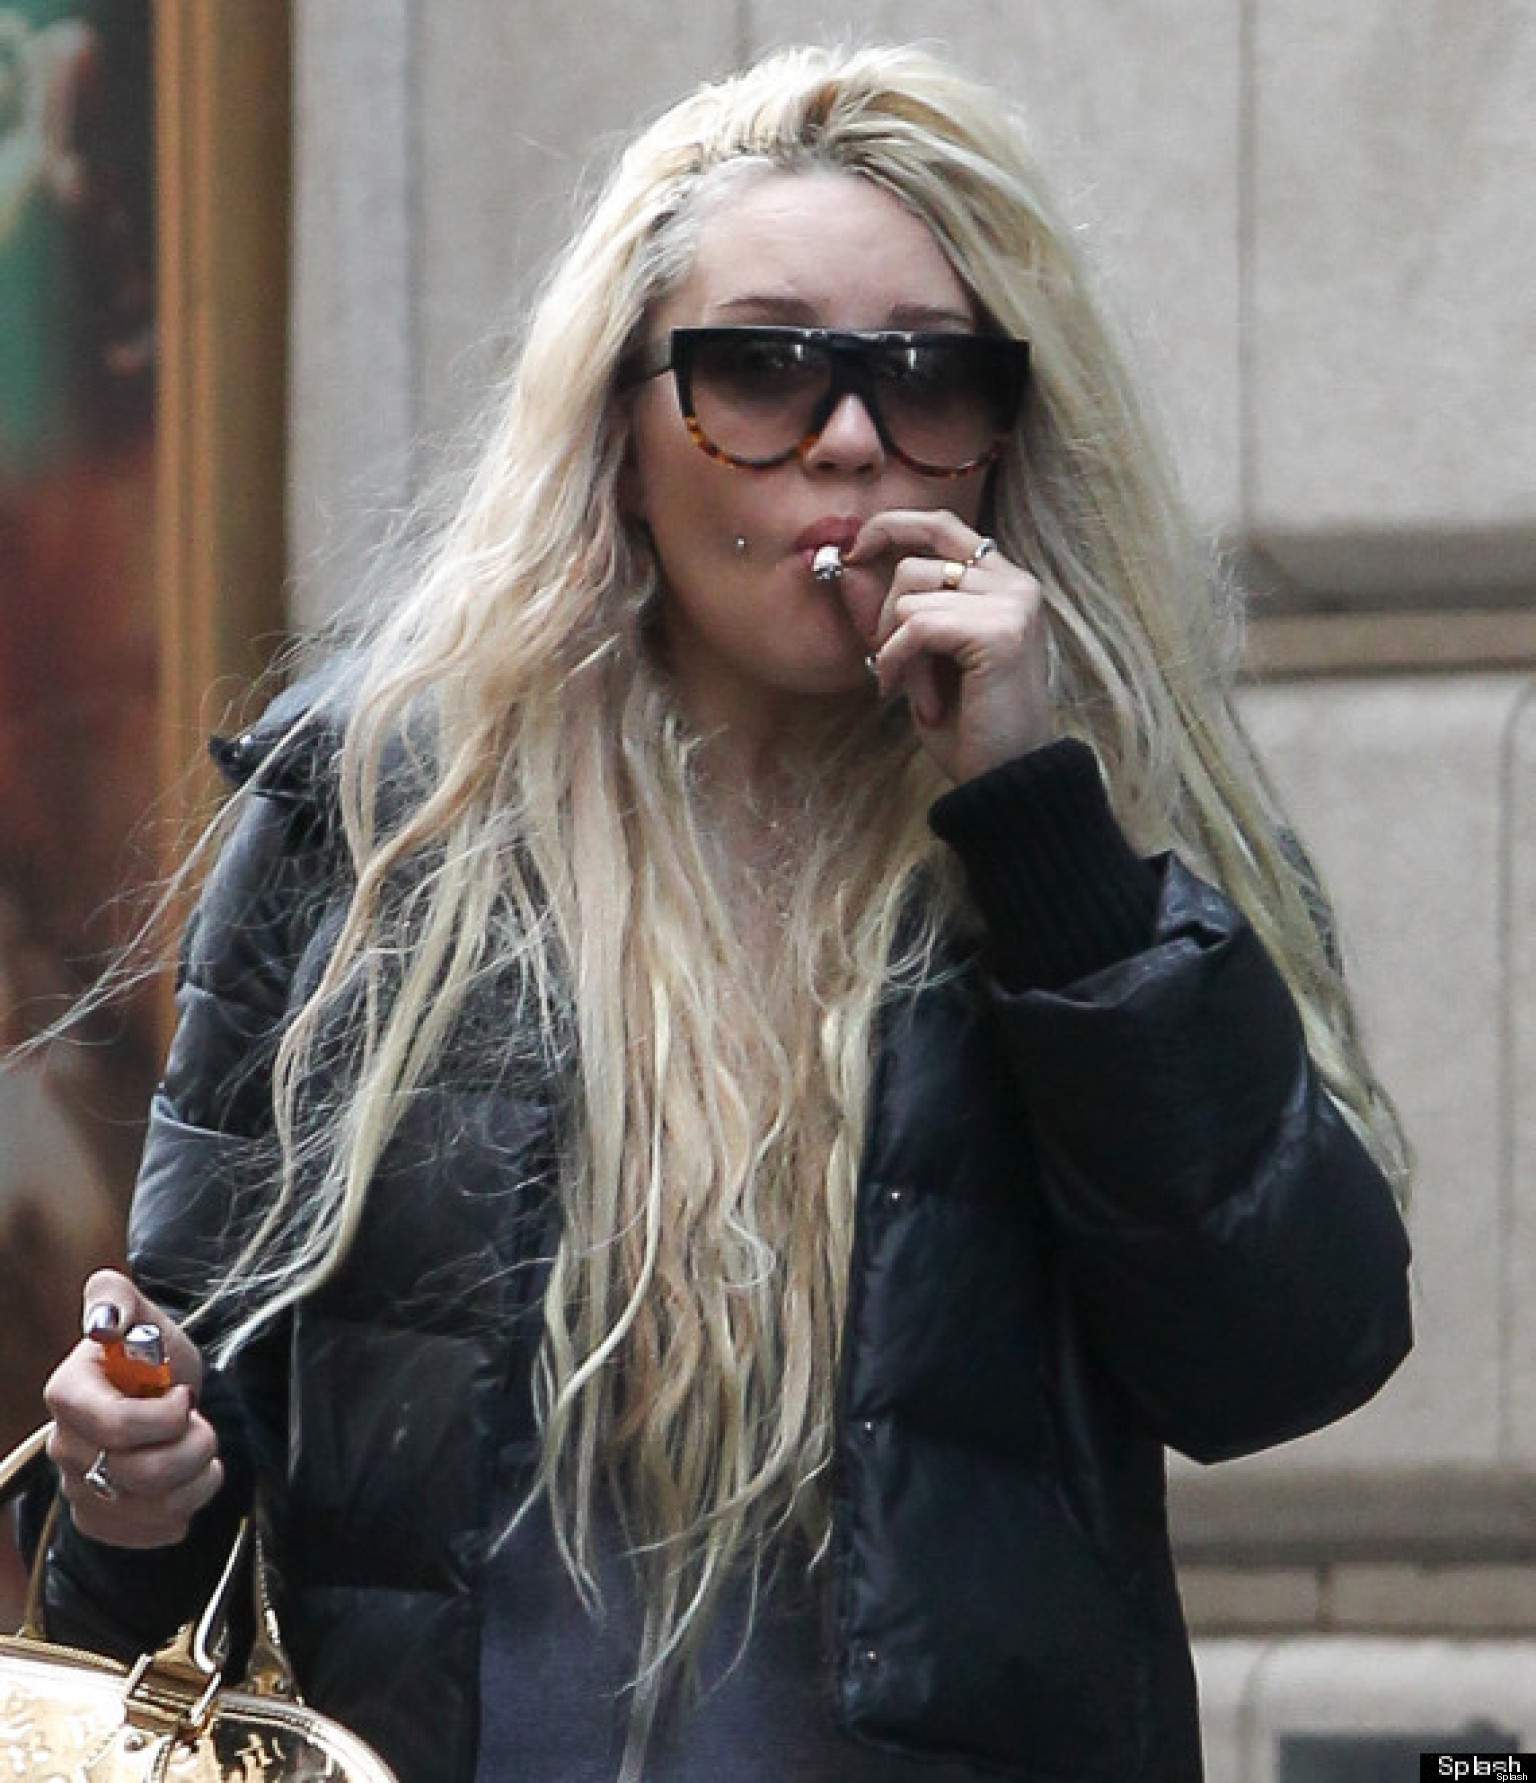 Amanda Bynes Kicked Out Of Gym For Smoking Weed